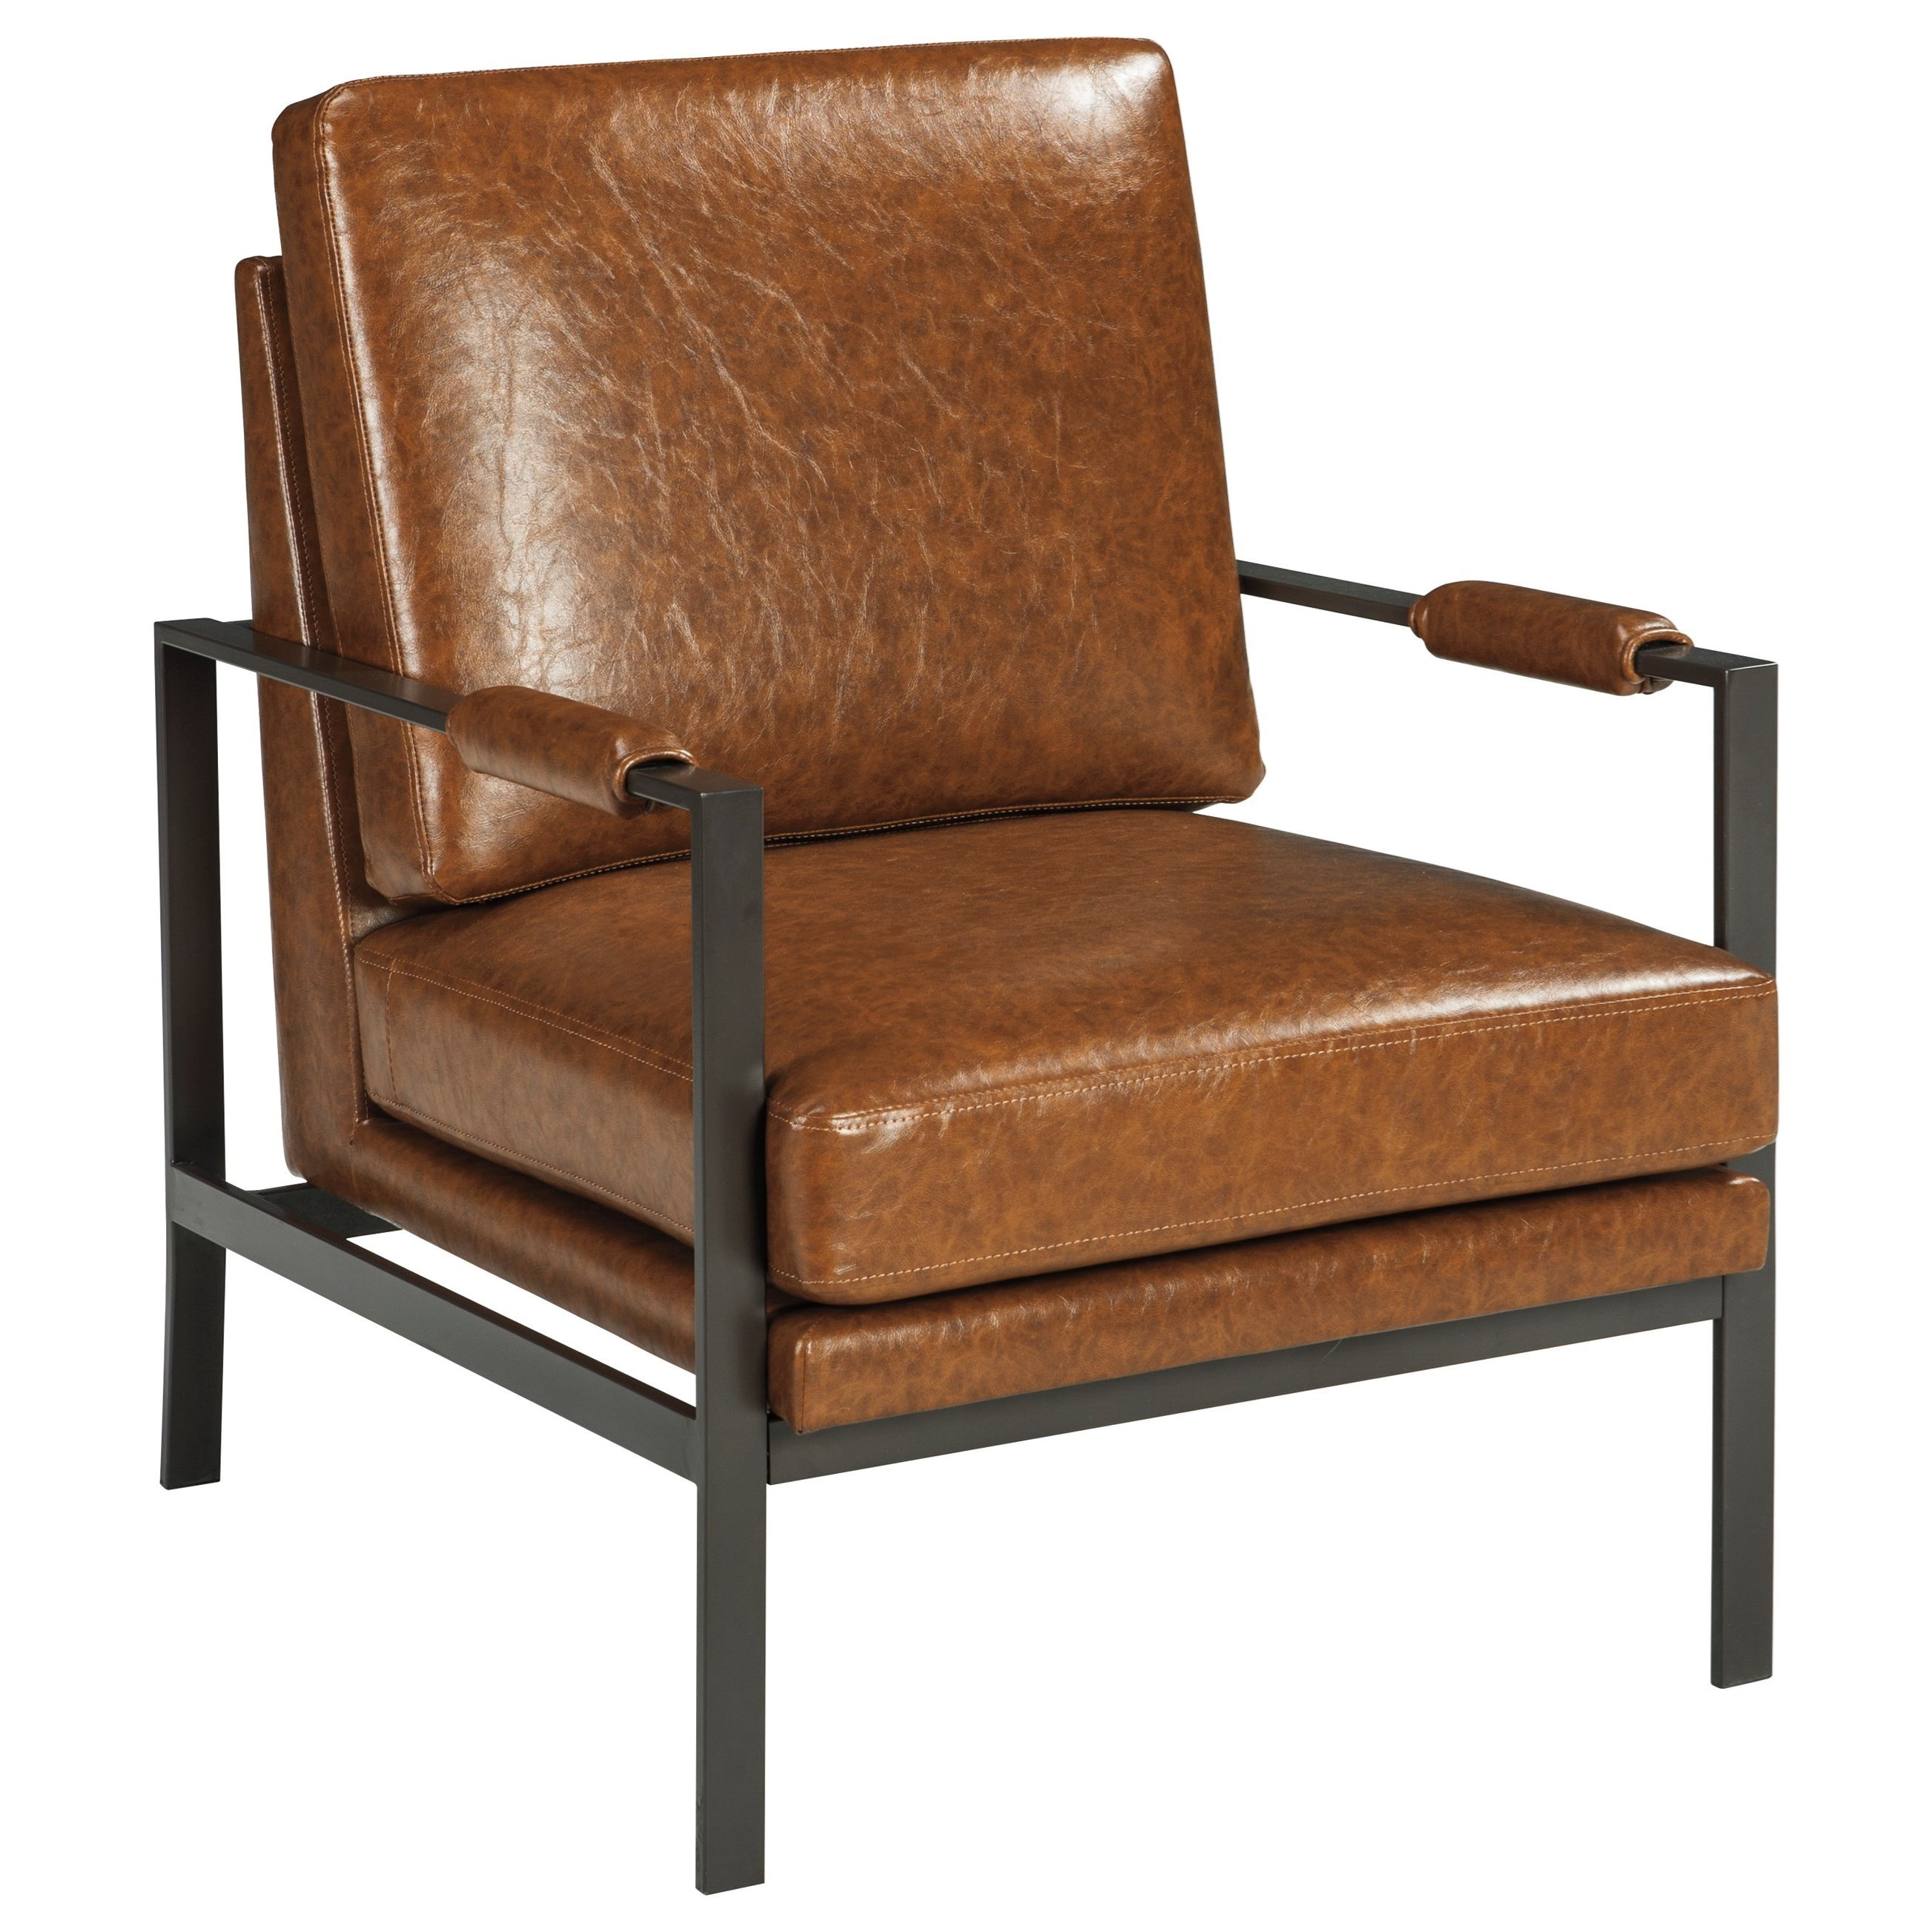 leather accent chairs unusual for sale signature design by ashley peacemaker dark bronze finish metal arm chair with light brown faux